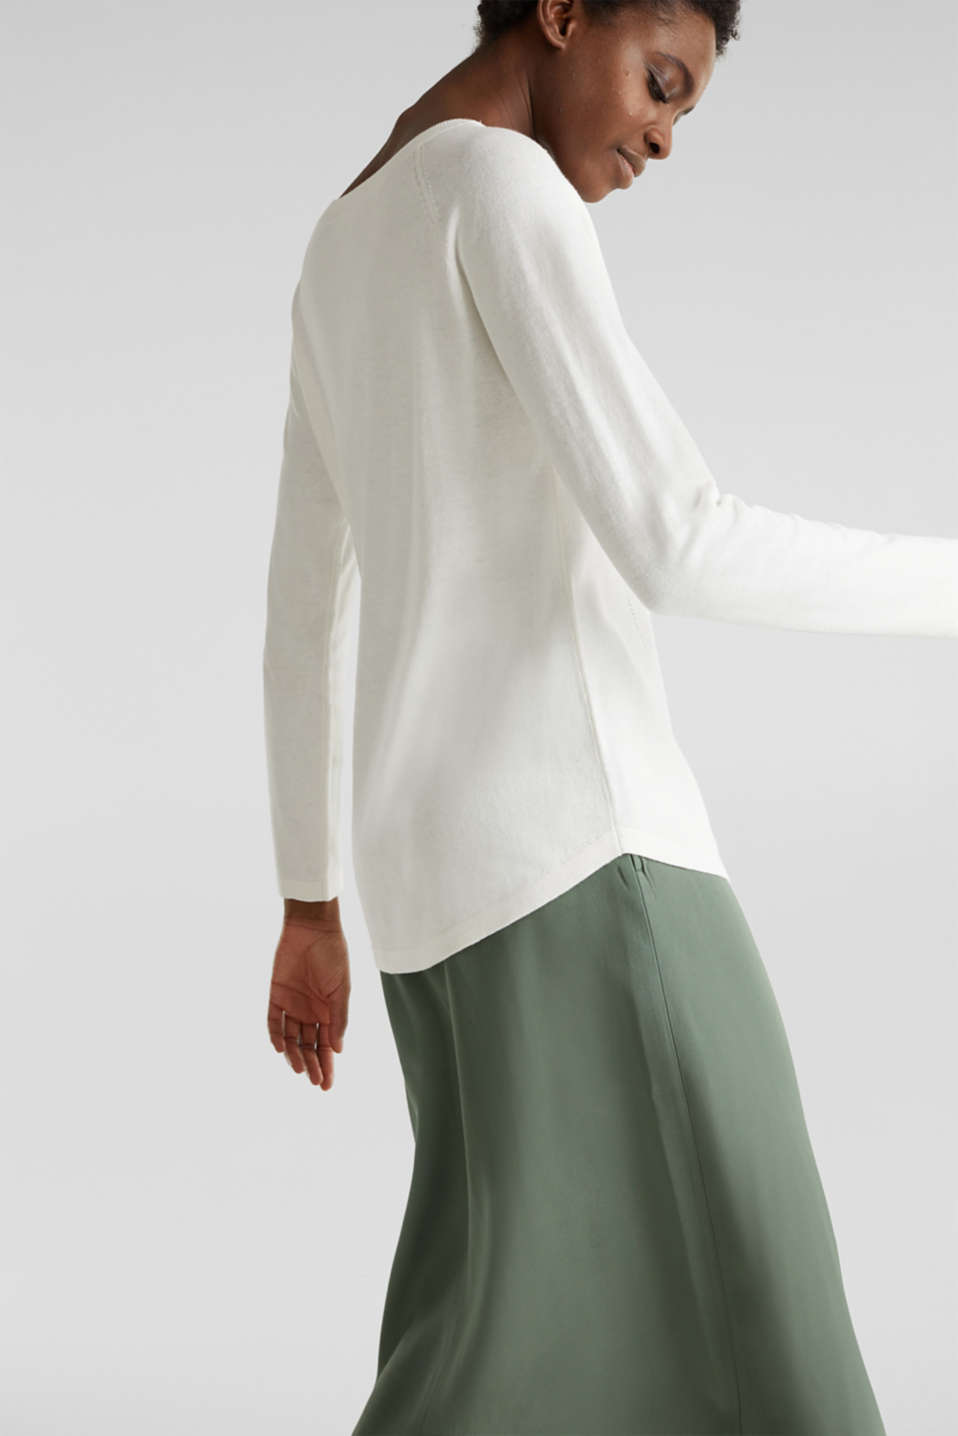 With linen: Jumper with open-work patterned details, OFF WHITE, detail image number 2